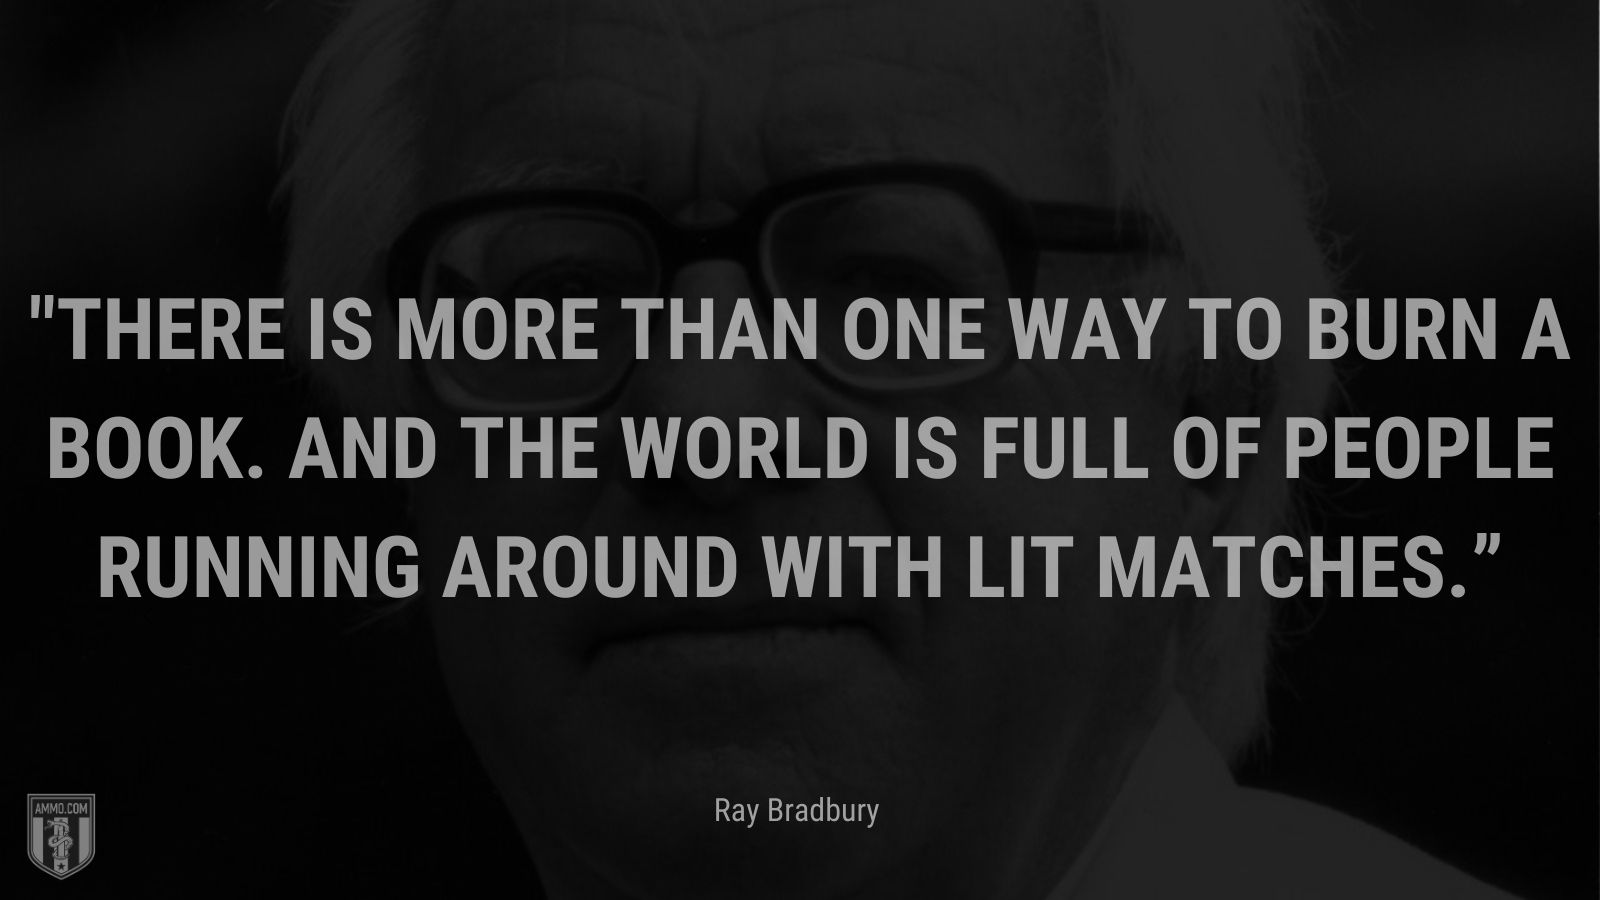 """""""There is more than one way to burn a book.  And the world is full of people running around with lit matches."""" - Ray Bradbury"""